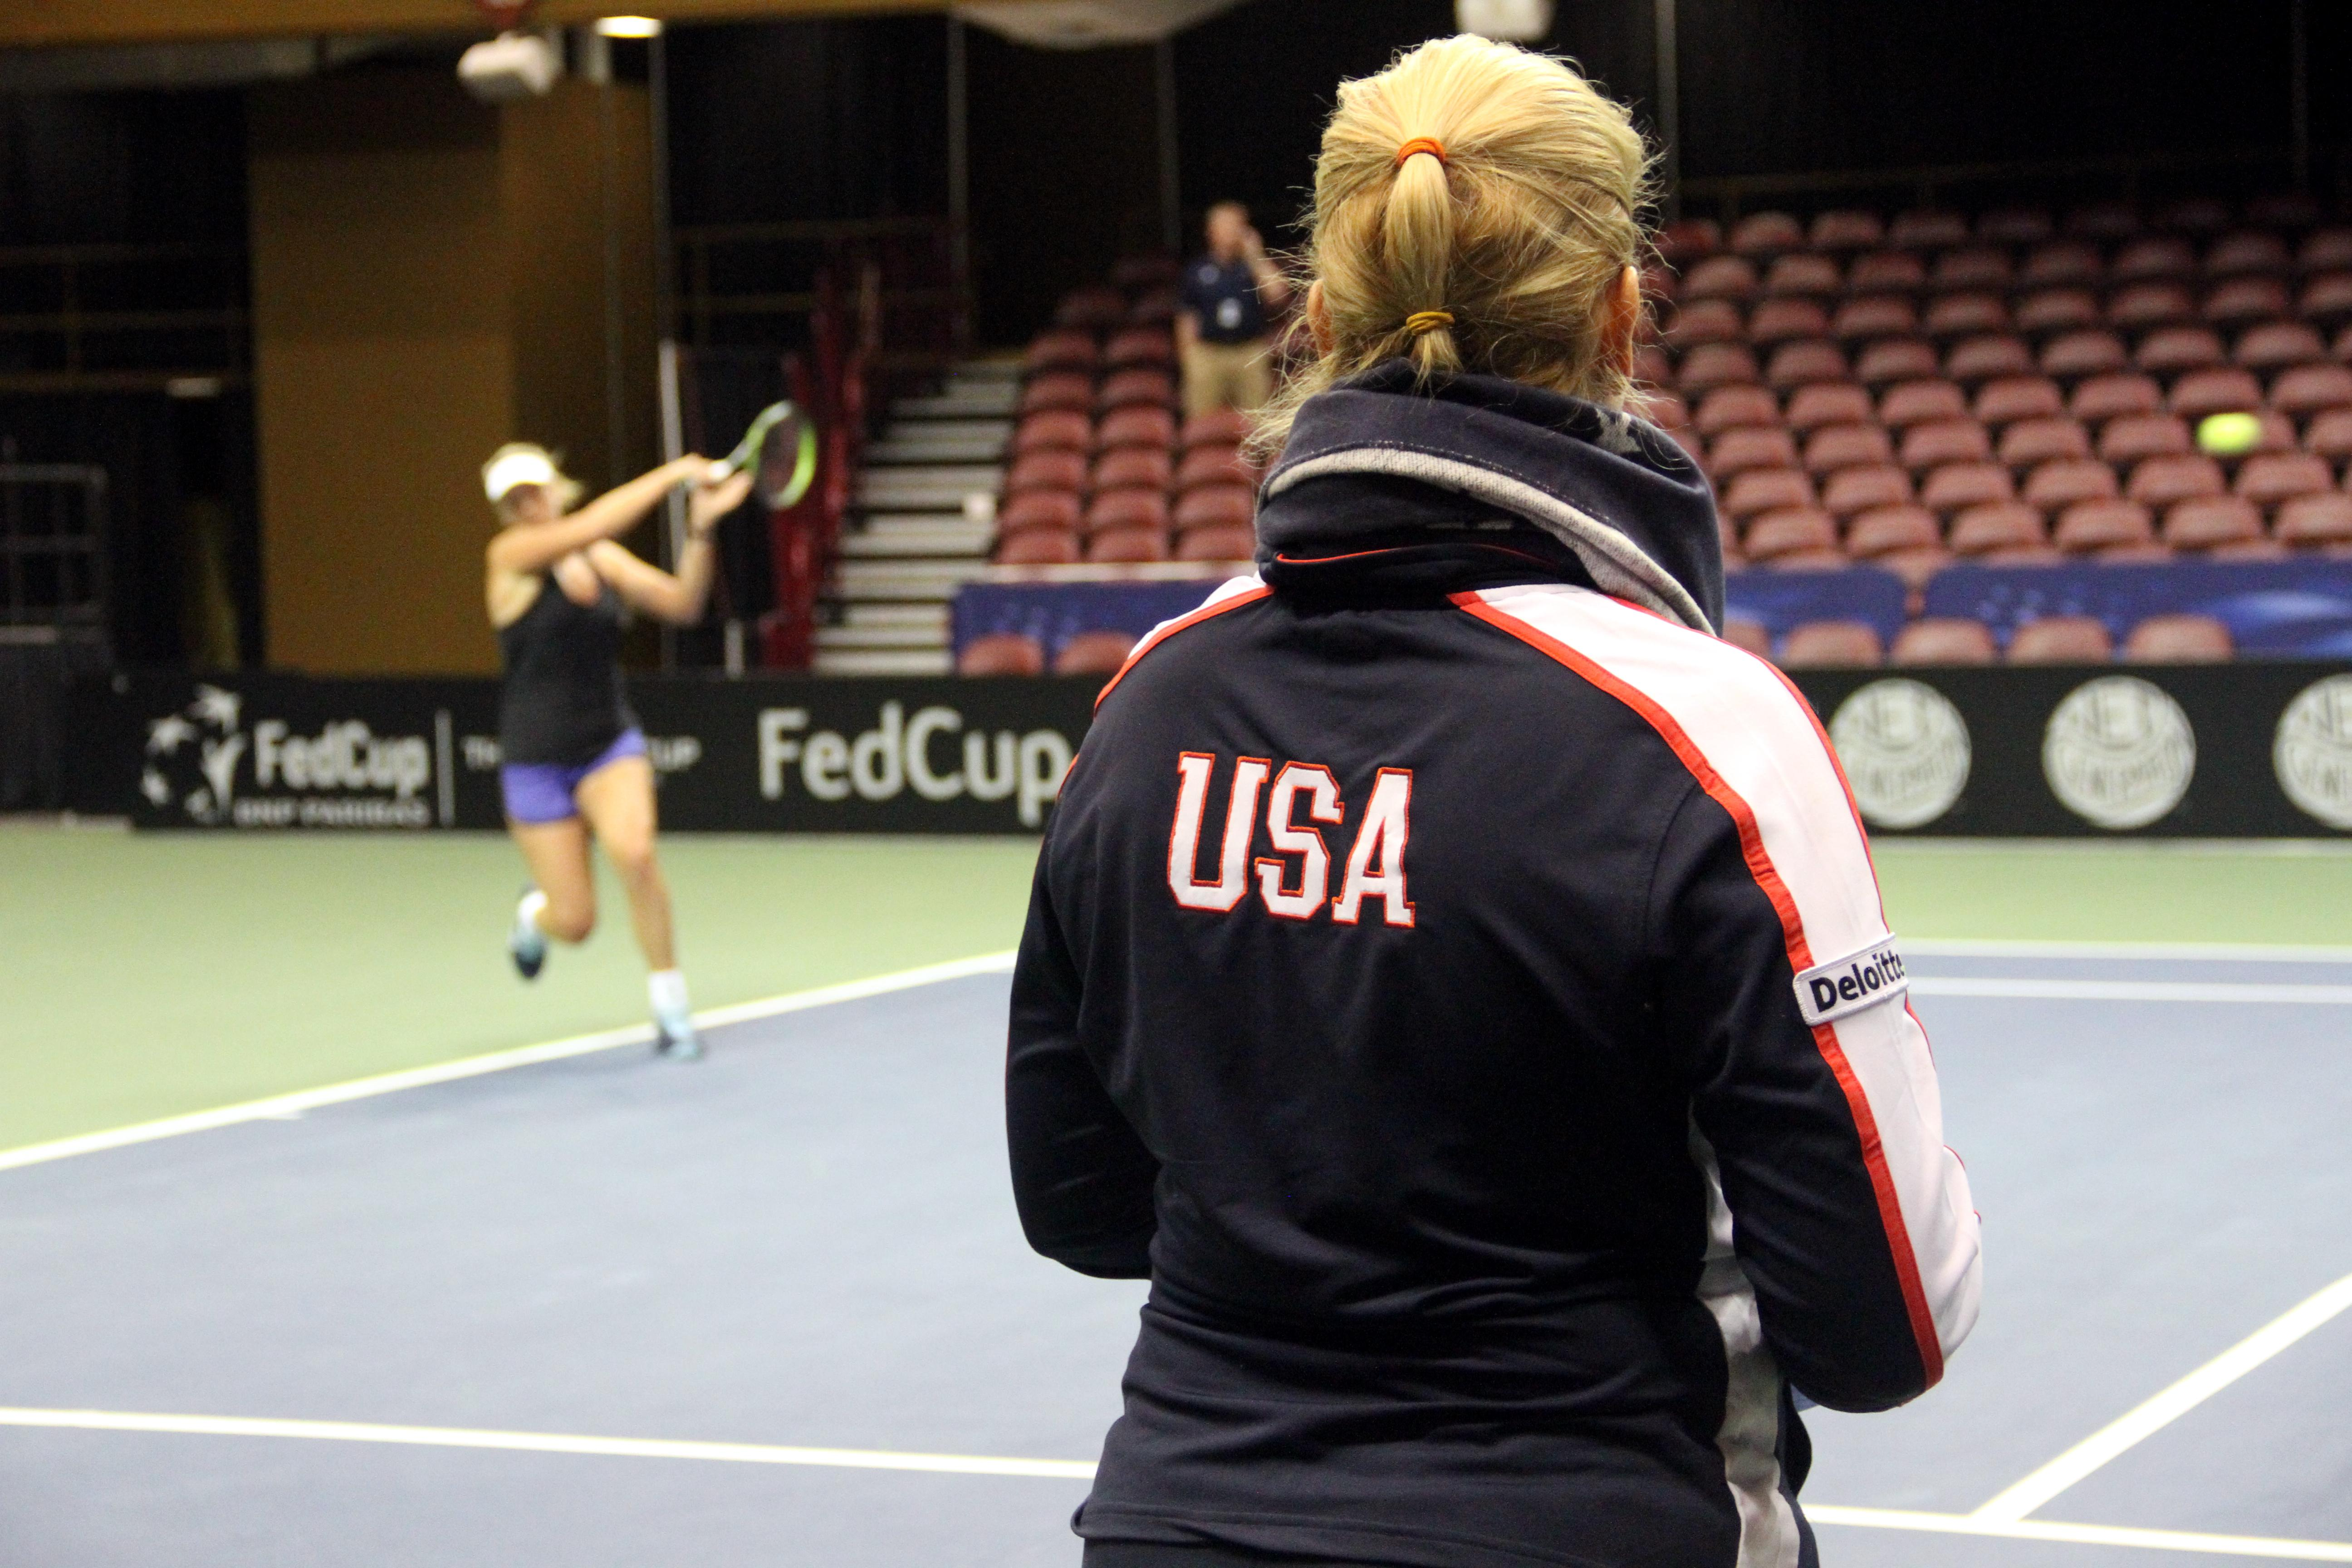 CoCo Vandeweghe practices at the US Cellular Center on Feb. 7, 2018, as Captain Kathy Rinaldi looks on. (Photo credit: WLOS Staff)